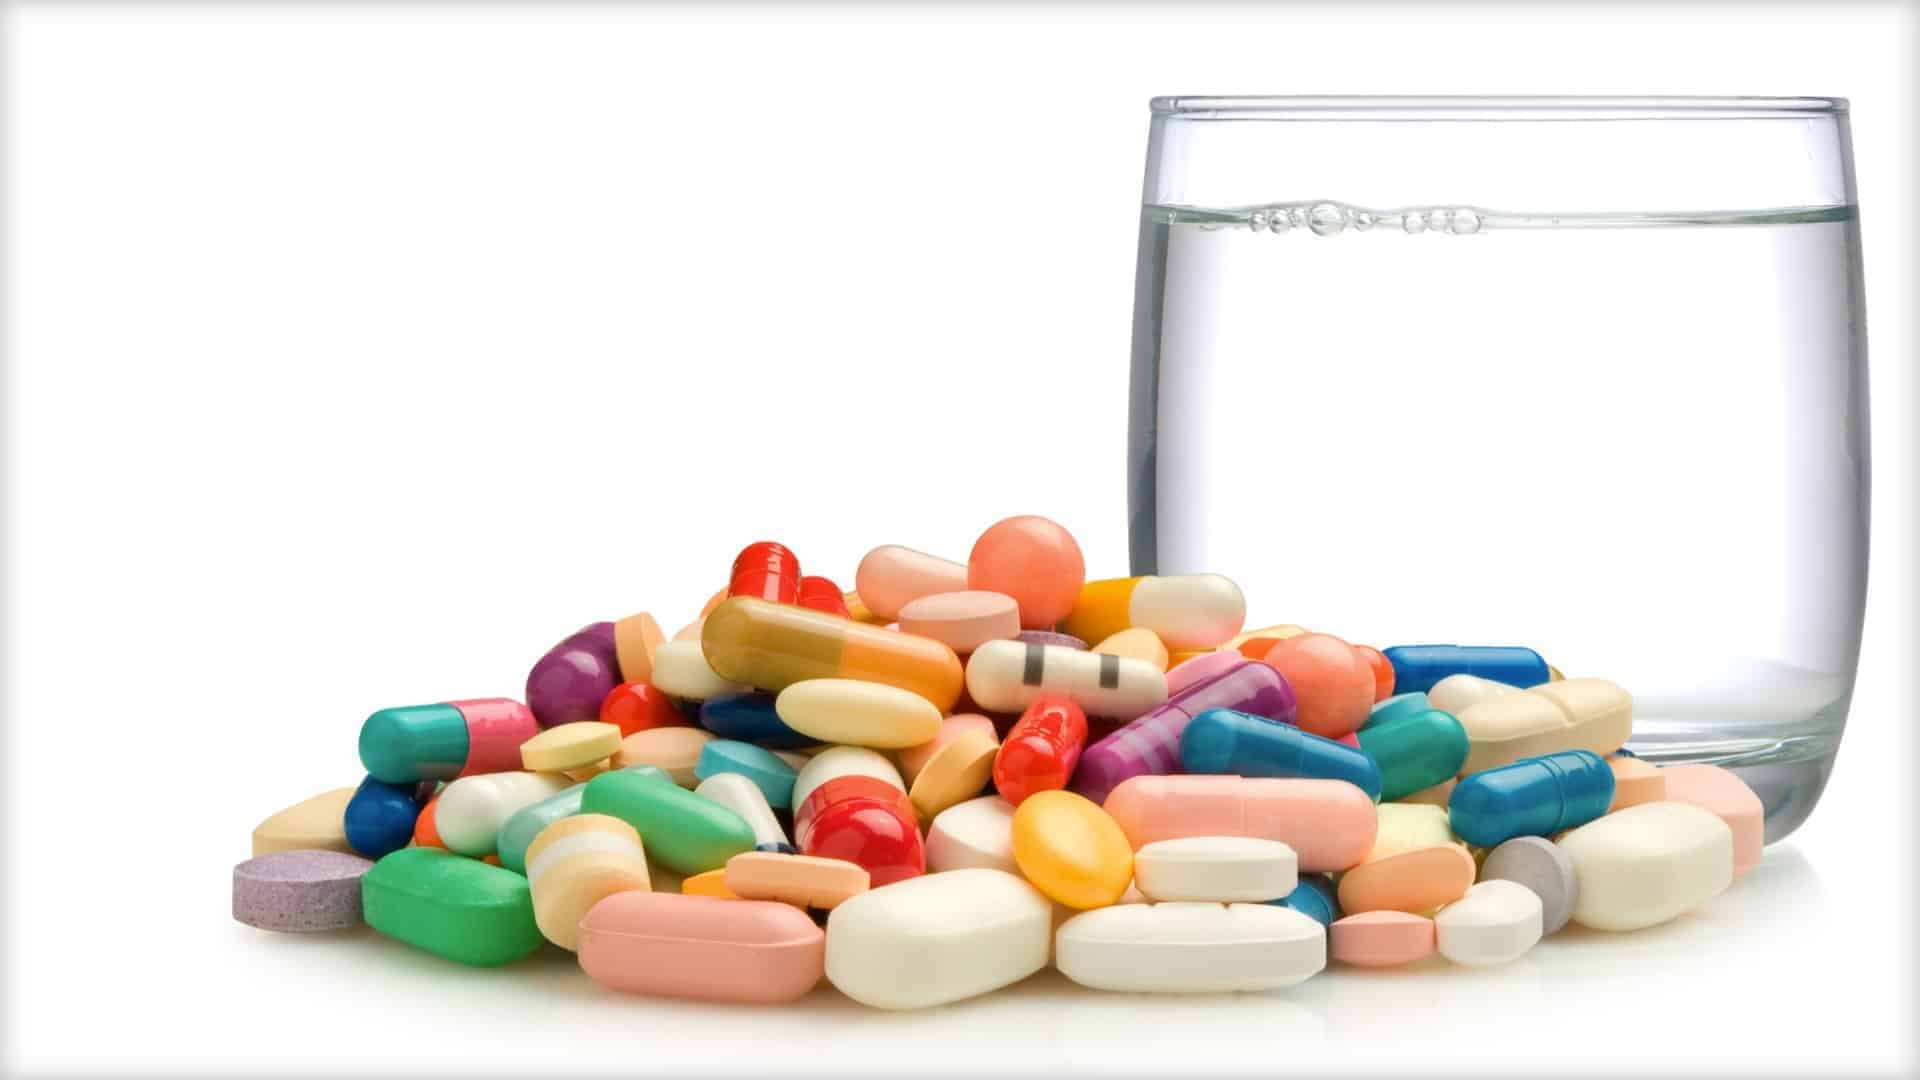 A large number of differing pills can be seen of different colors next to a glass of water.